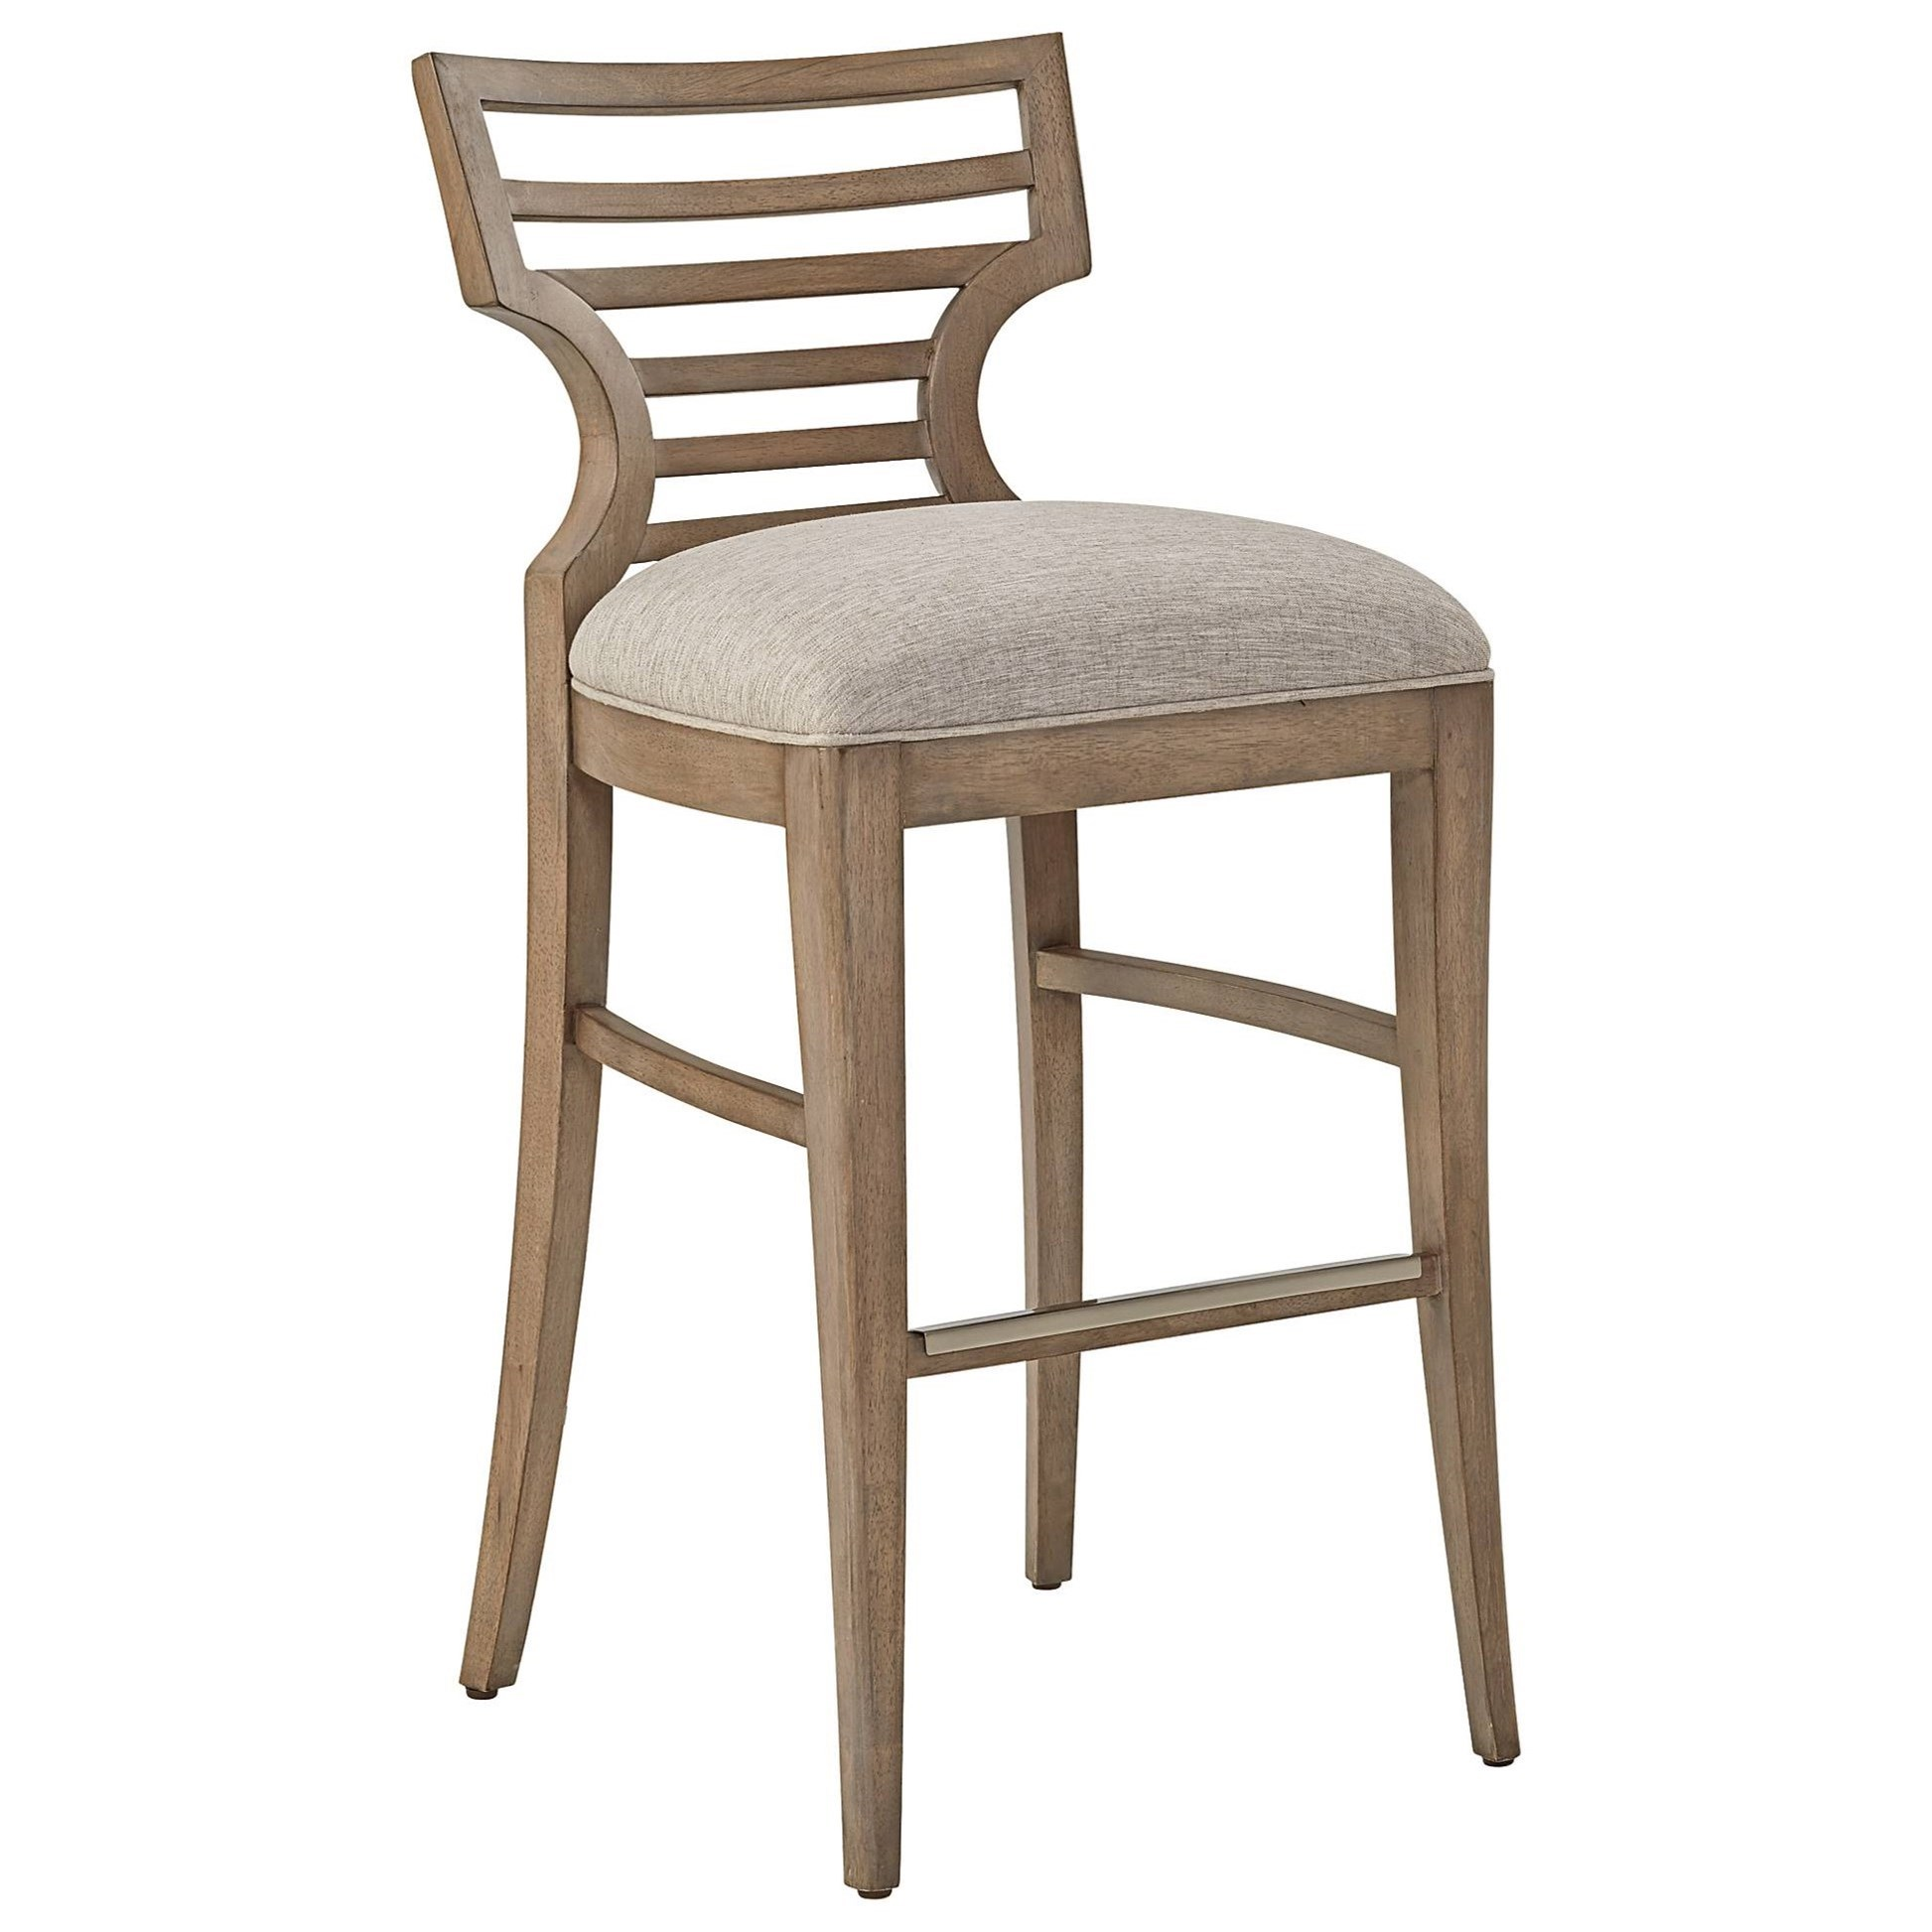 Stanley Furniture Virage Barstool with Upholstered Seat ...